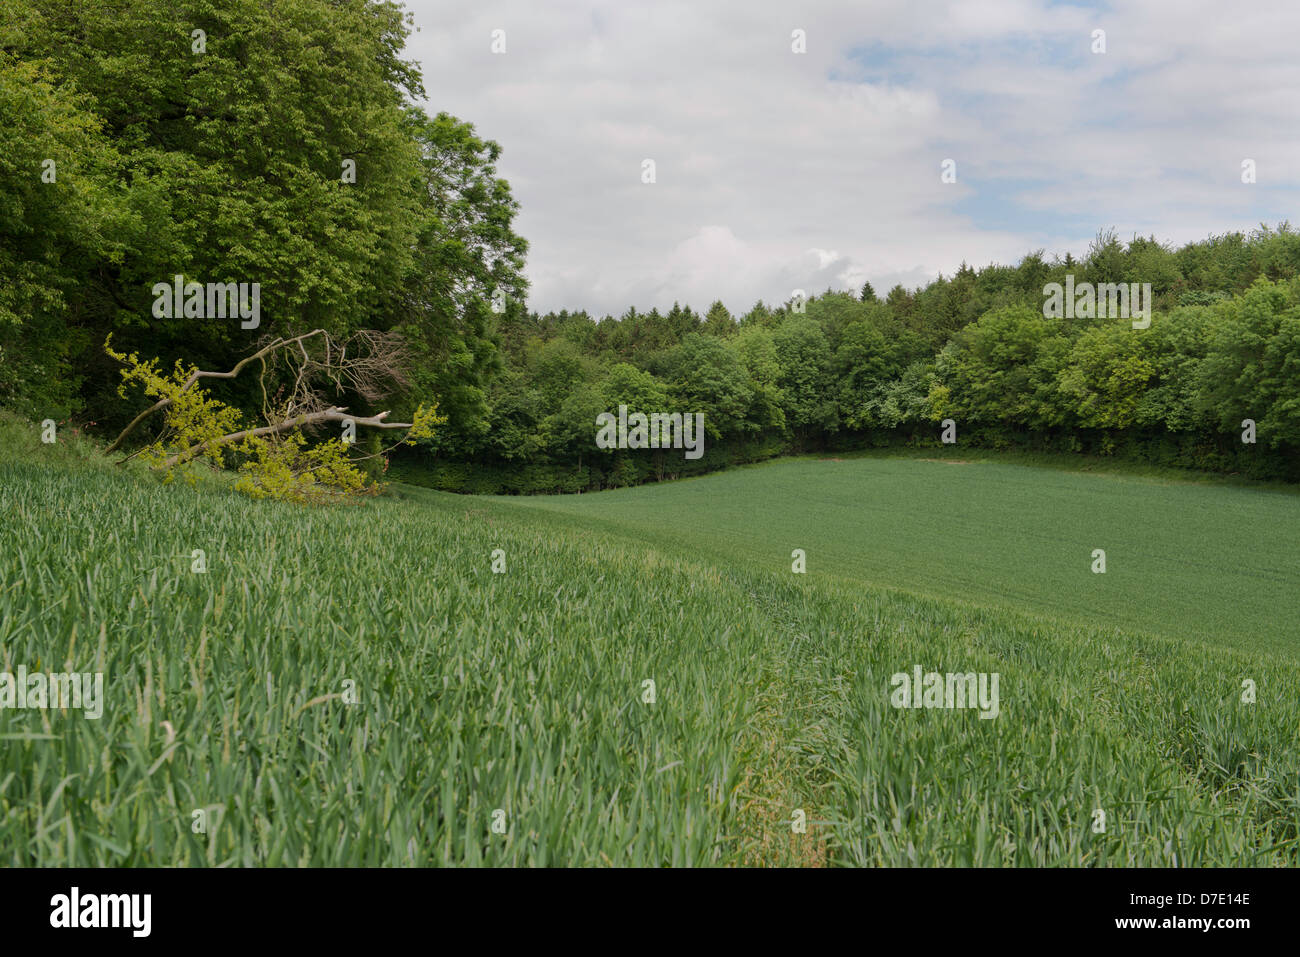 Proposed tunnel entrance site at Mantles Wood on Route of HS2 Railway London to Birmingham - Stock Image